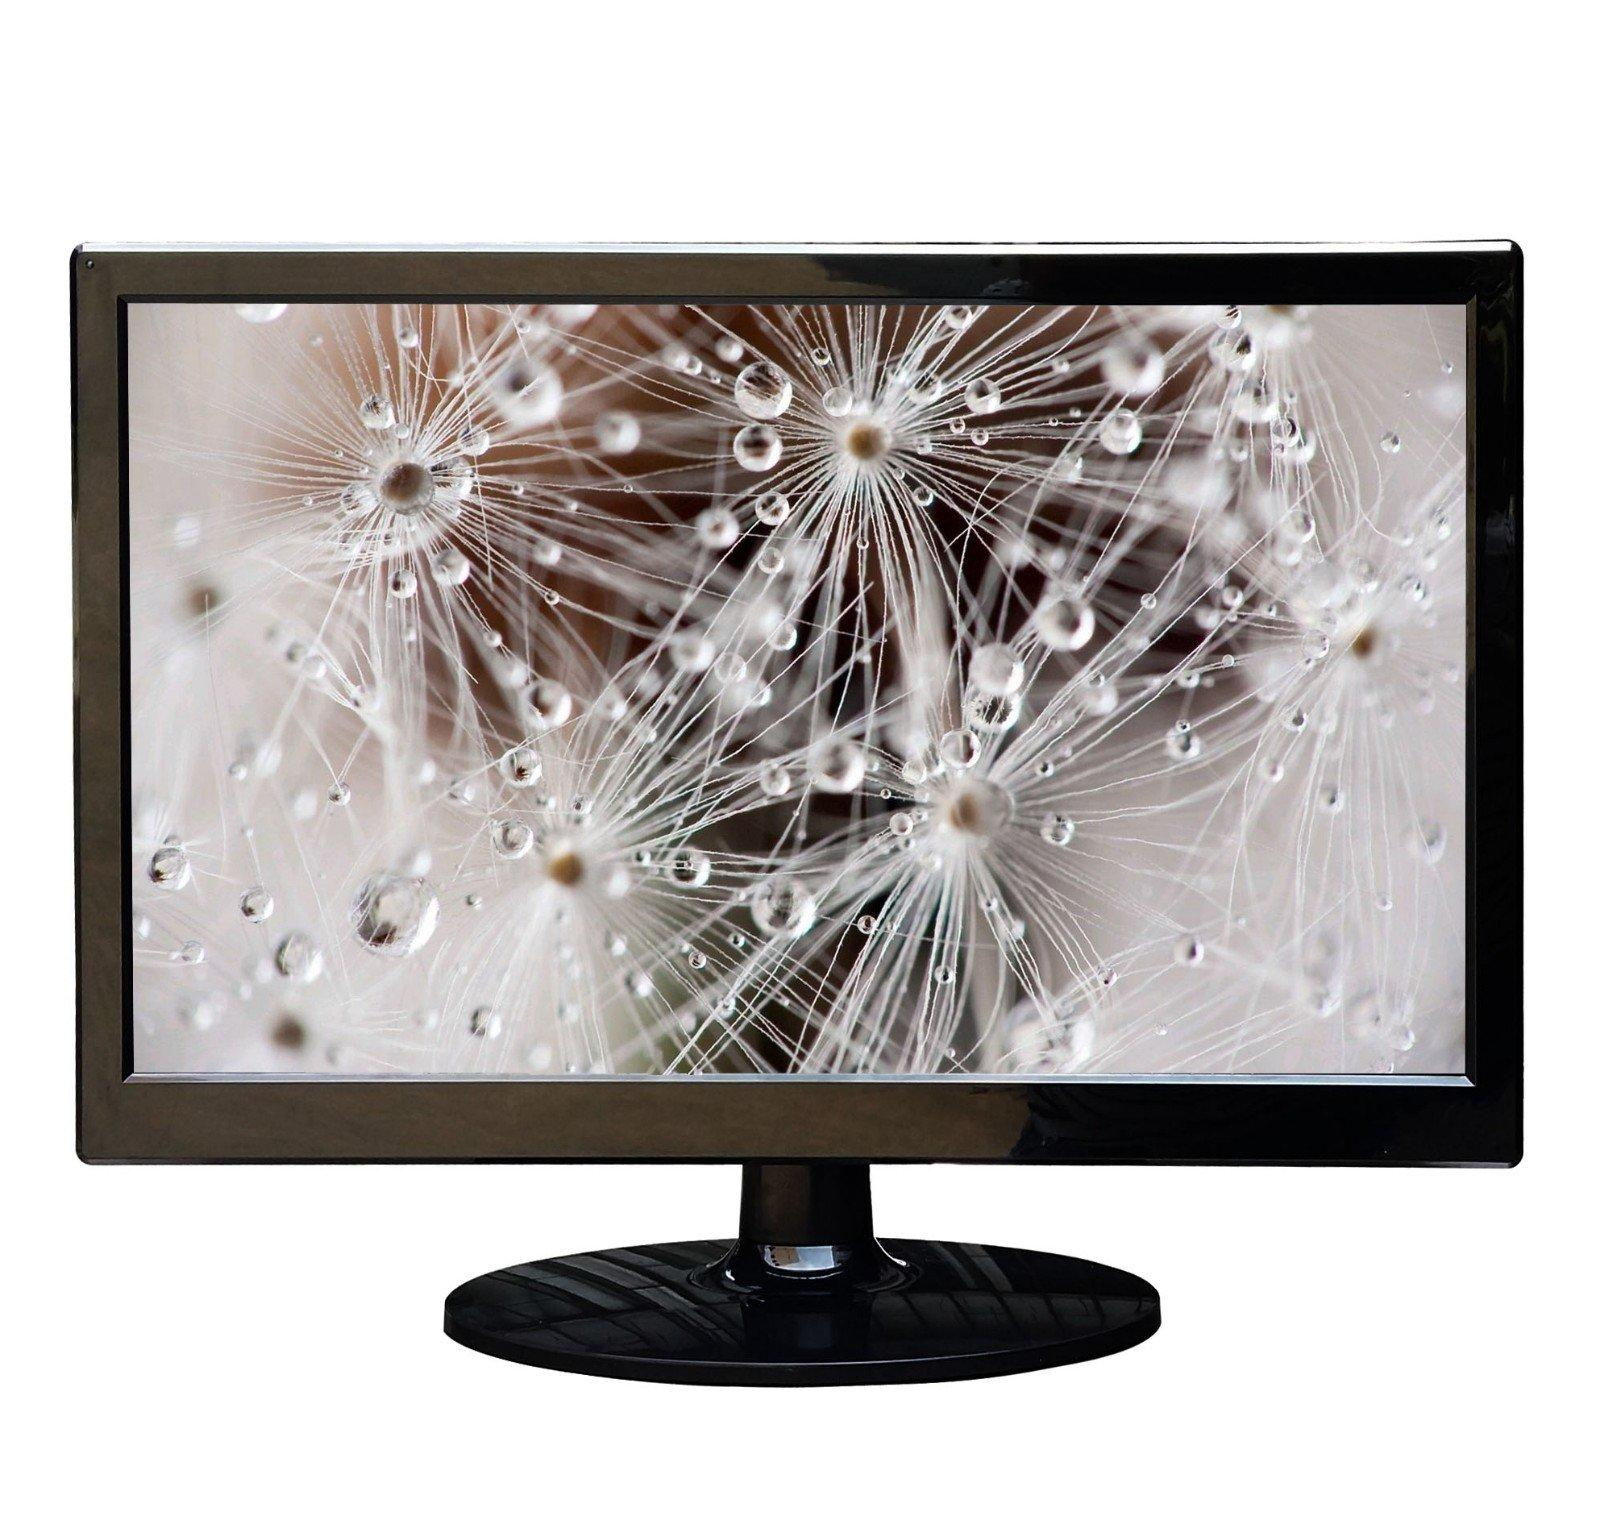 Xinyao LCD hot brand 19 inch full hd monitor front speaker for lcd screen-1